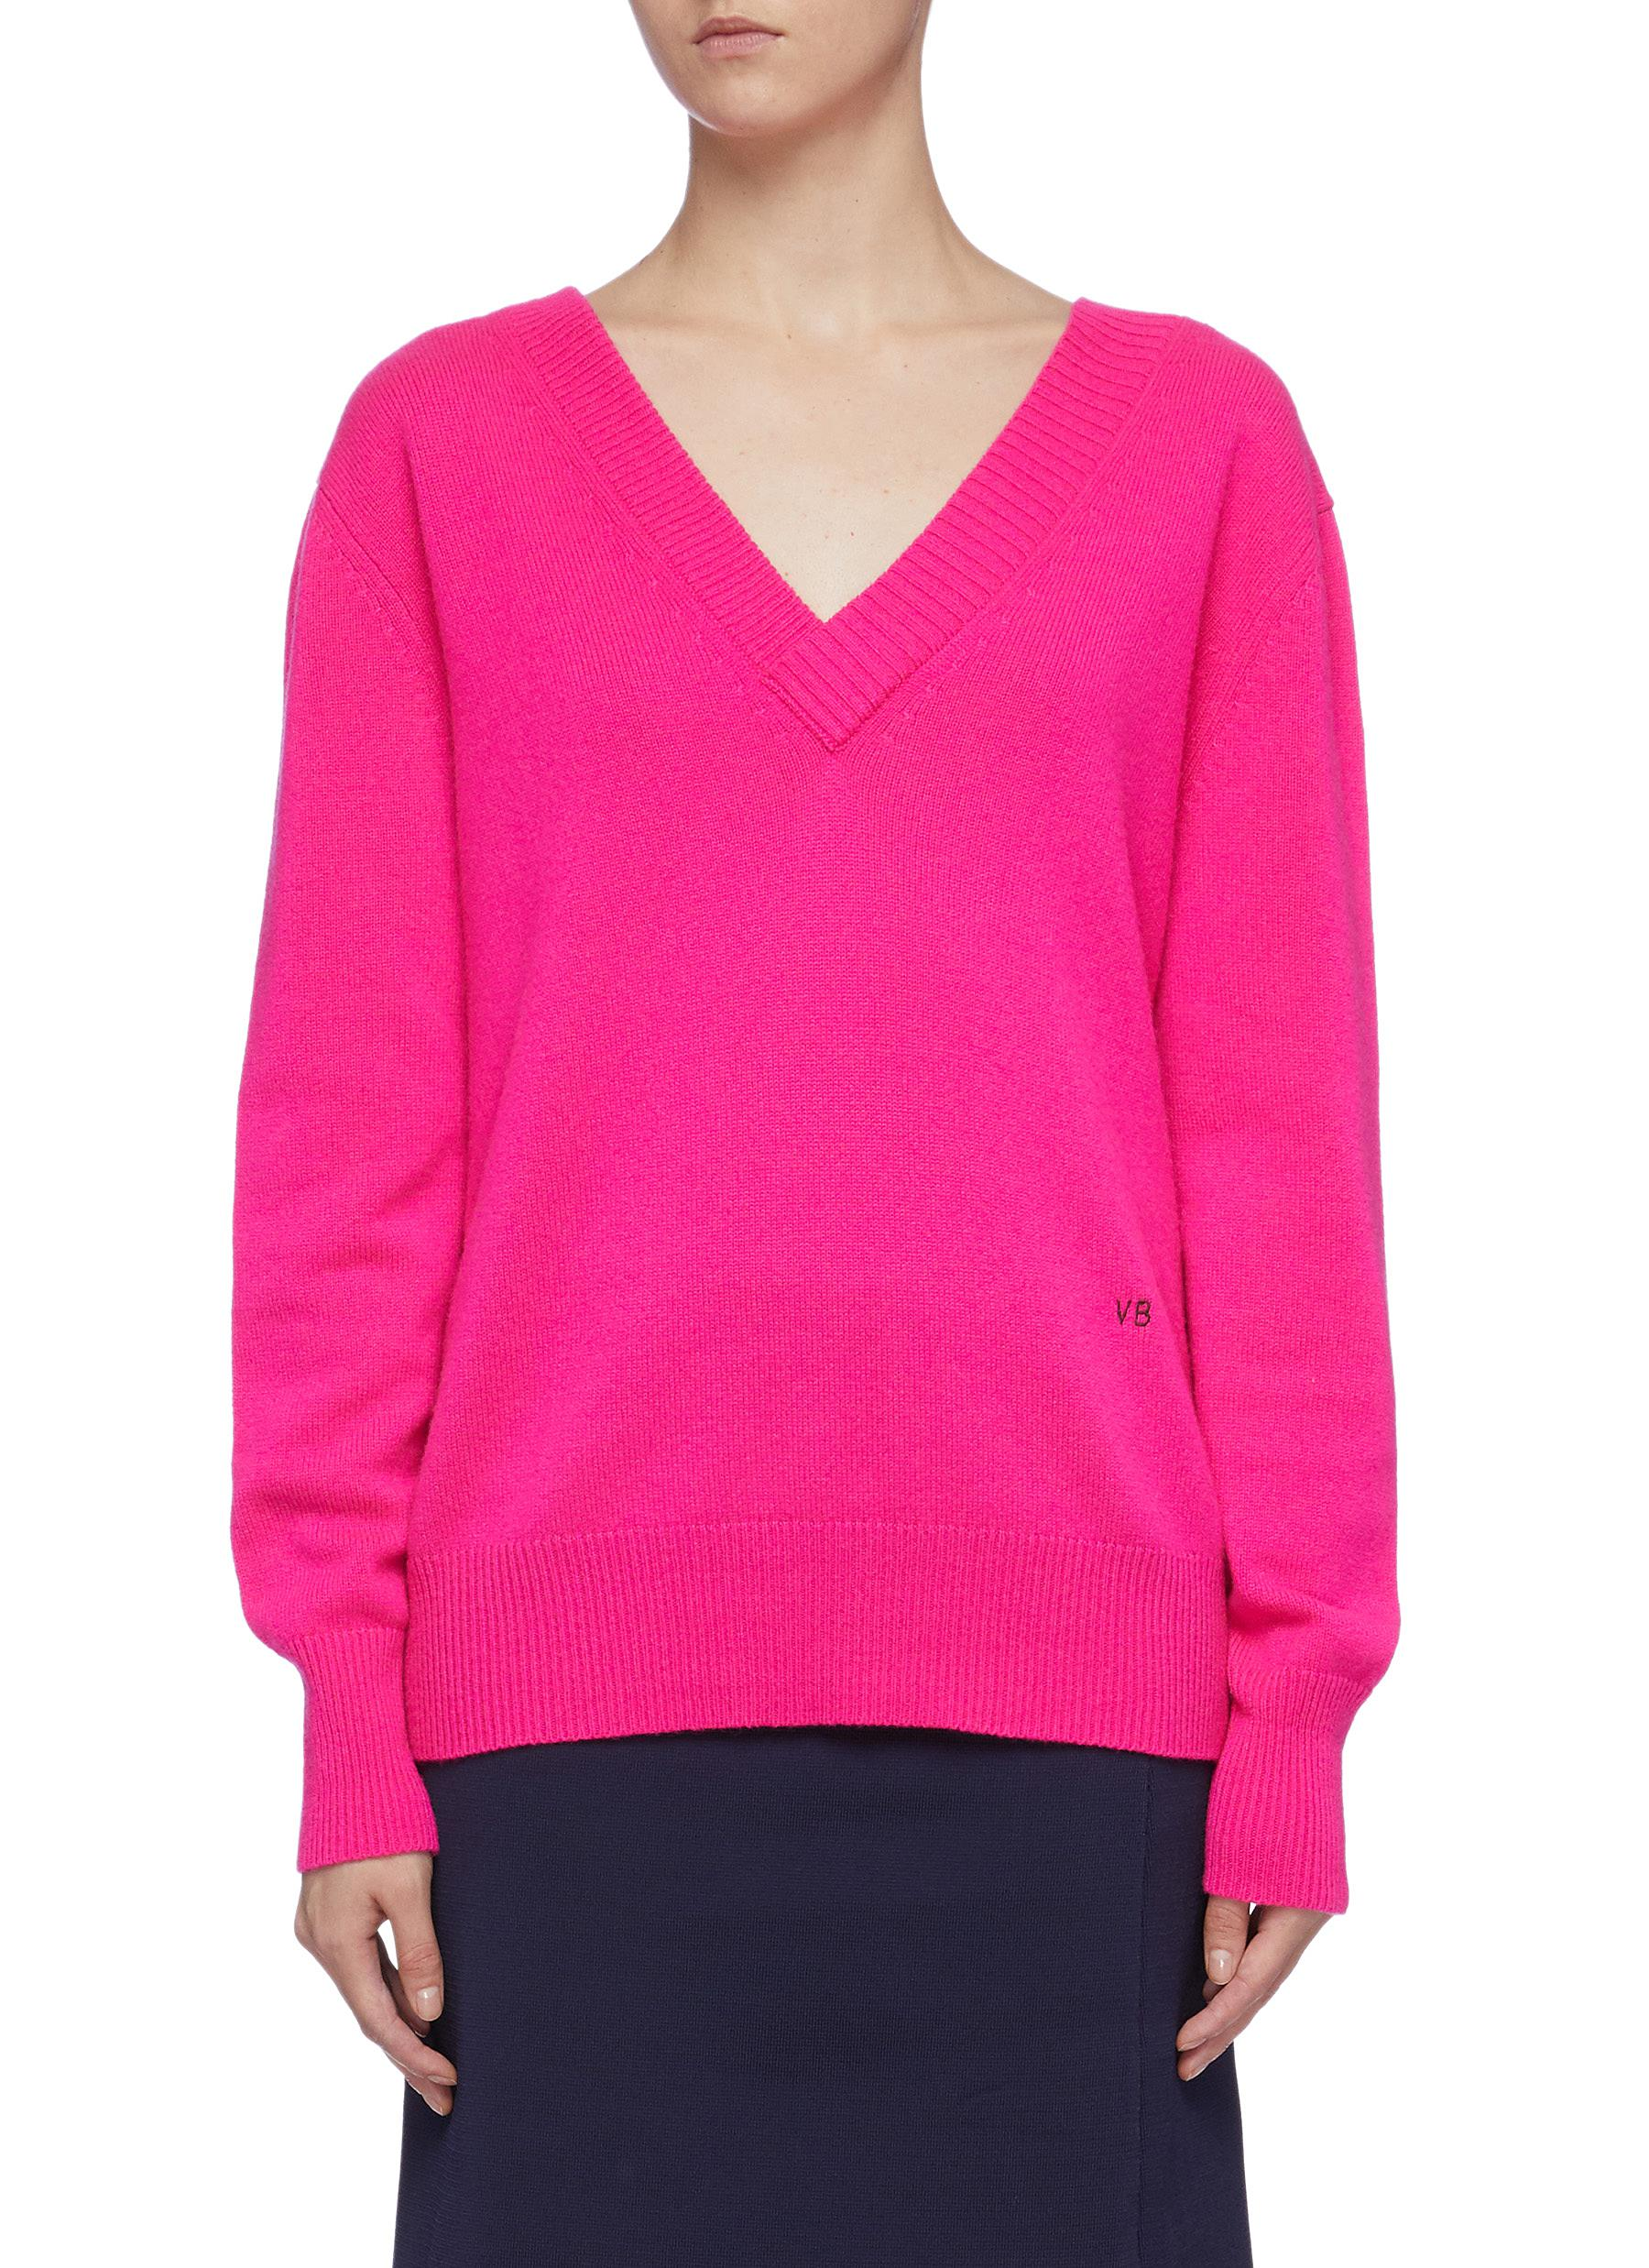 Cashmere V-neck sweater by Victoria Beckham